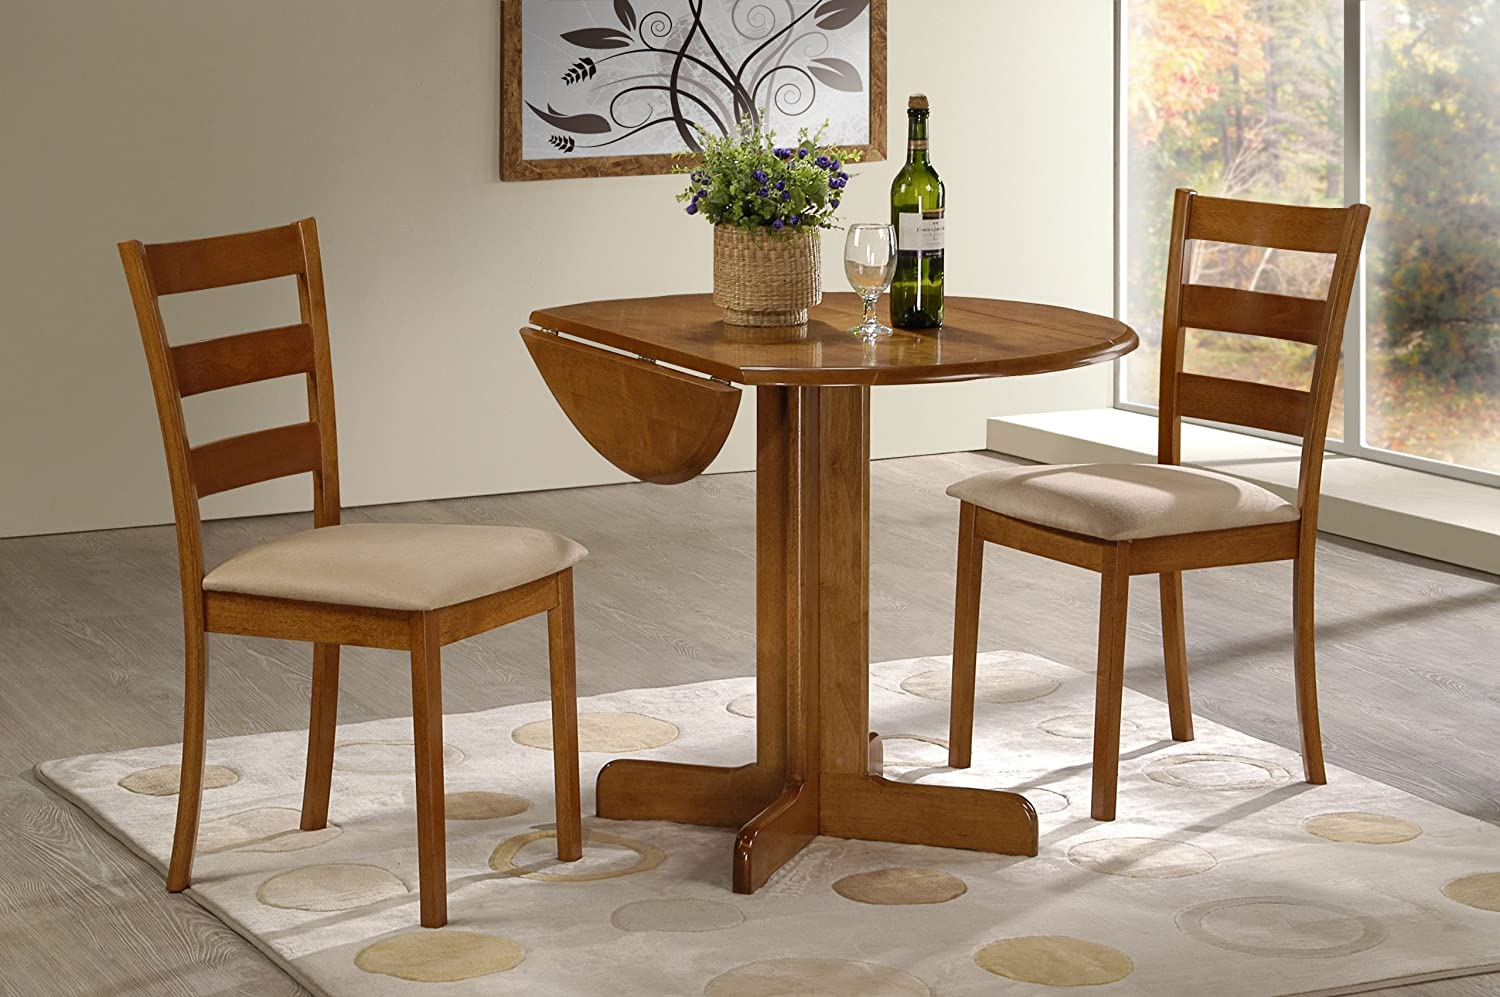 Amazon.com - 3 Piece Dining Set. 36  Drop Leaf Table with Two Chairs All Light Oak Finish - Table u0026 Chair Sets & Amazon.com - 3 Piece Dining Set. 36